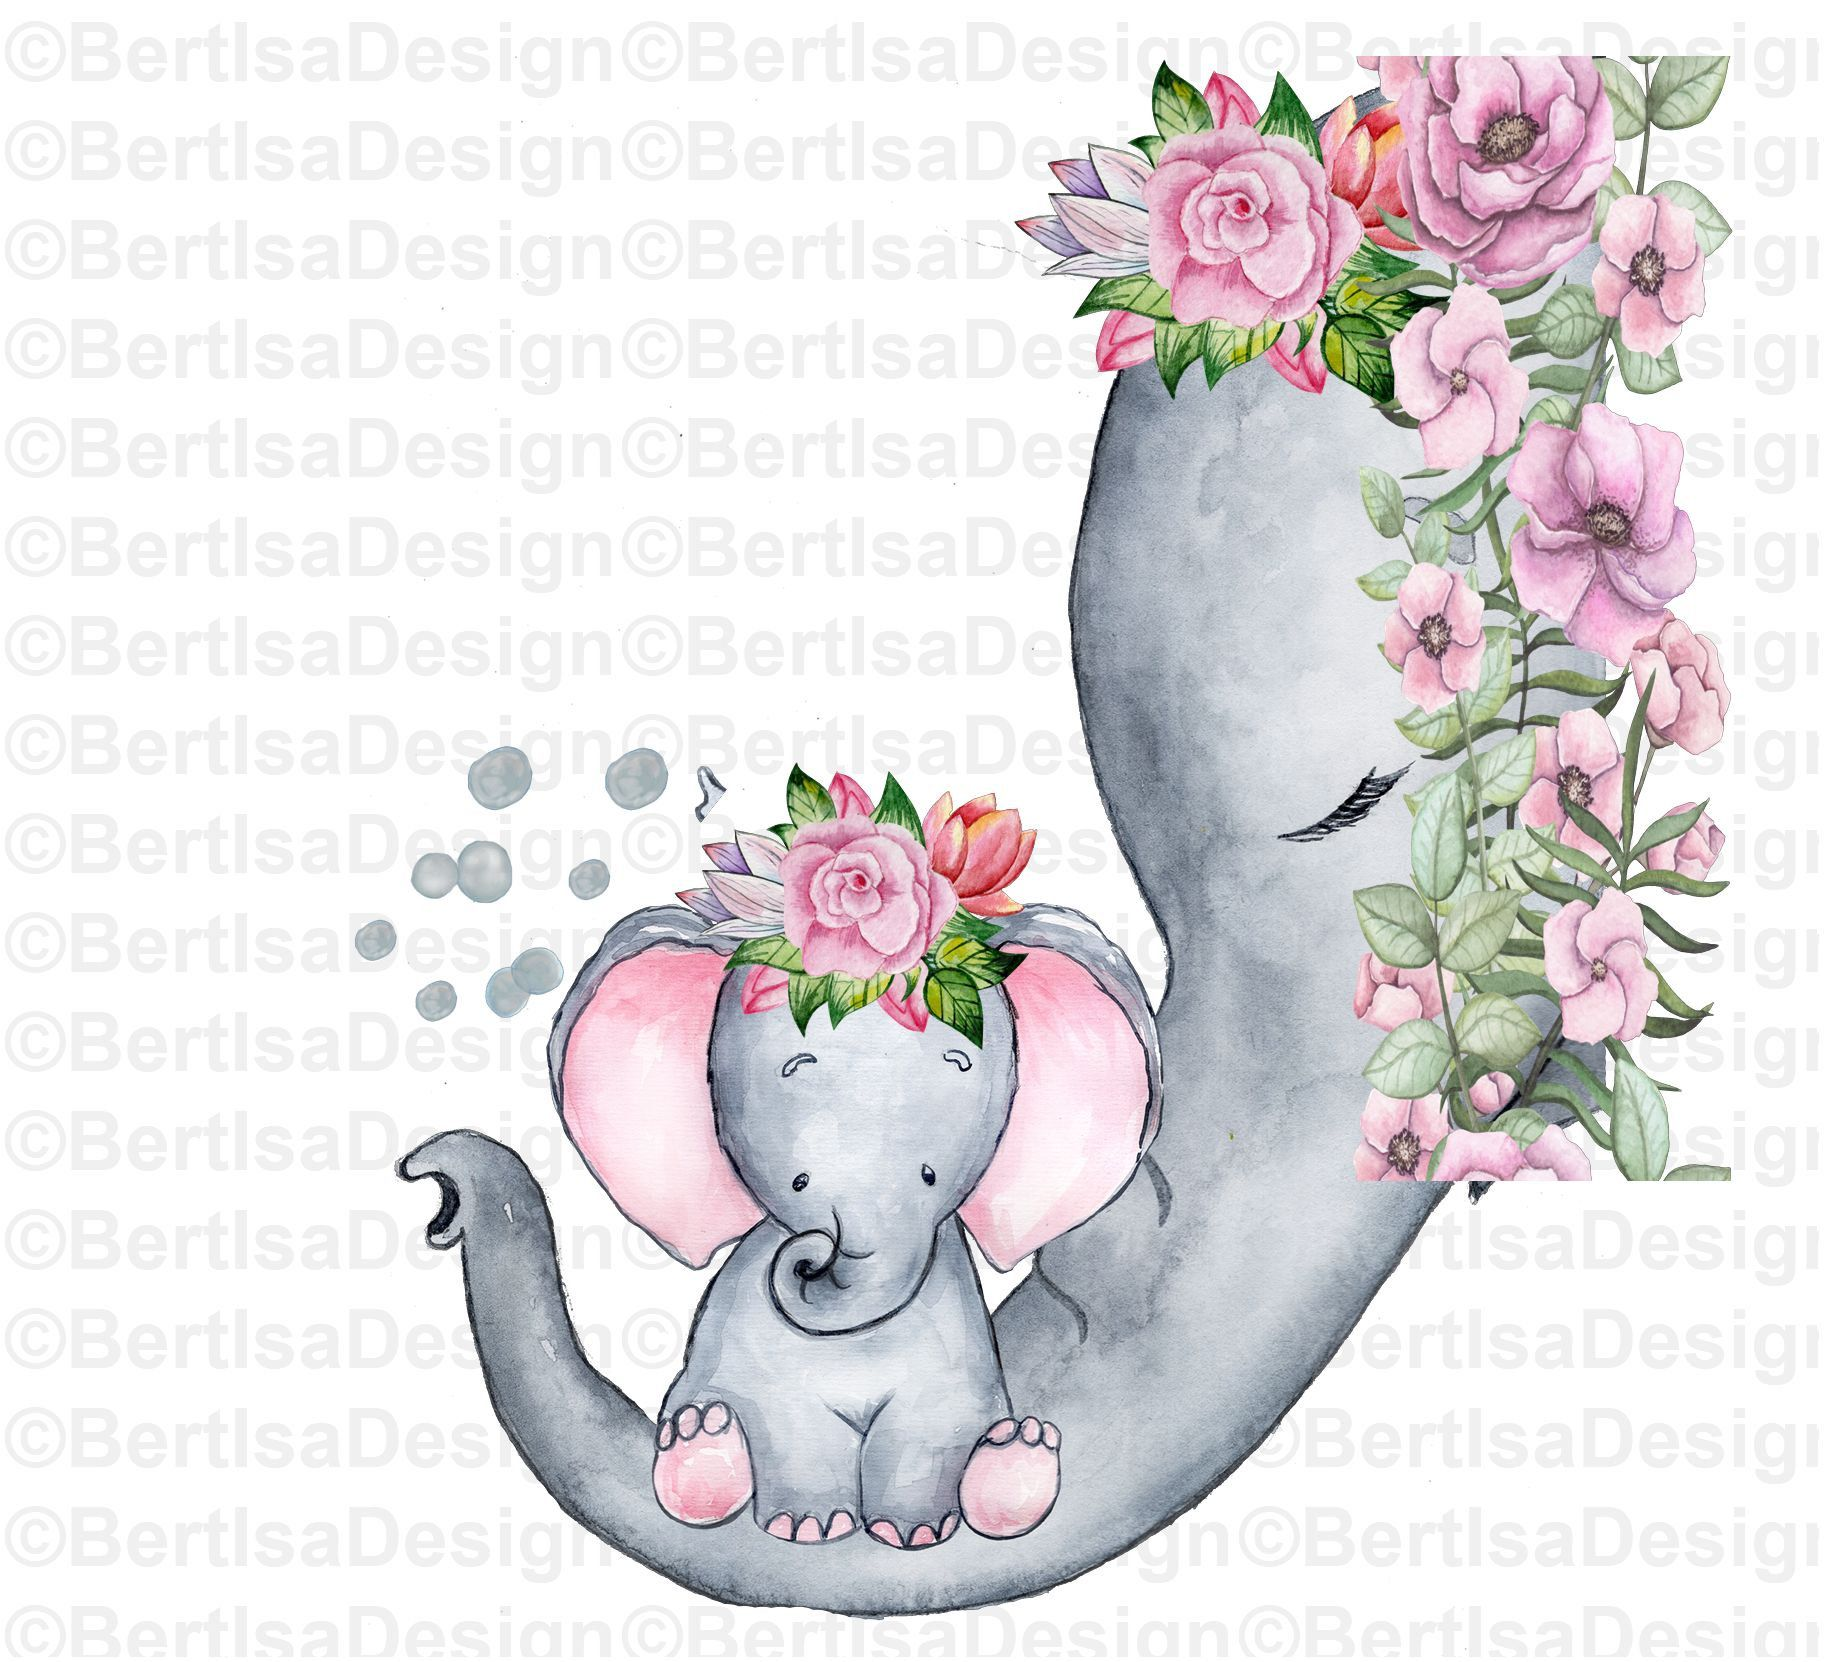 Elephant Clipart Mother And Baby Elephant Png Sublimation Design Watercolor Baby Elephant Floral Clipart Digital Download Printable Mother And Baby Elephant Clip Art Watercolor Elephant